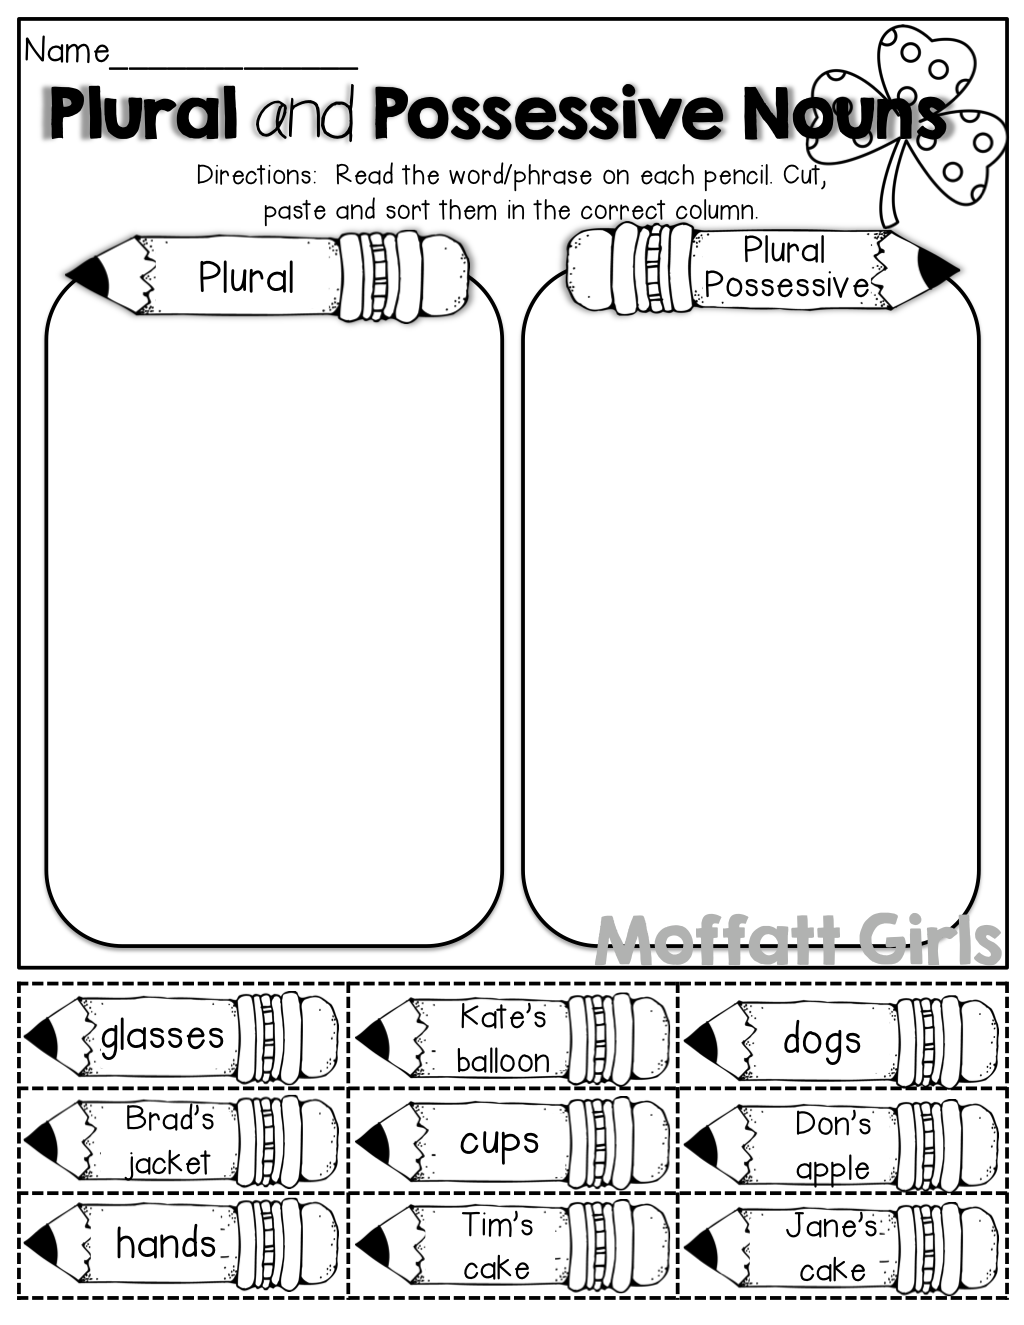 medium resolution of French 1 Possessive Nouns Worksheet   Printable Worksheets and Activities  for Teachers